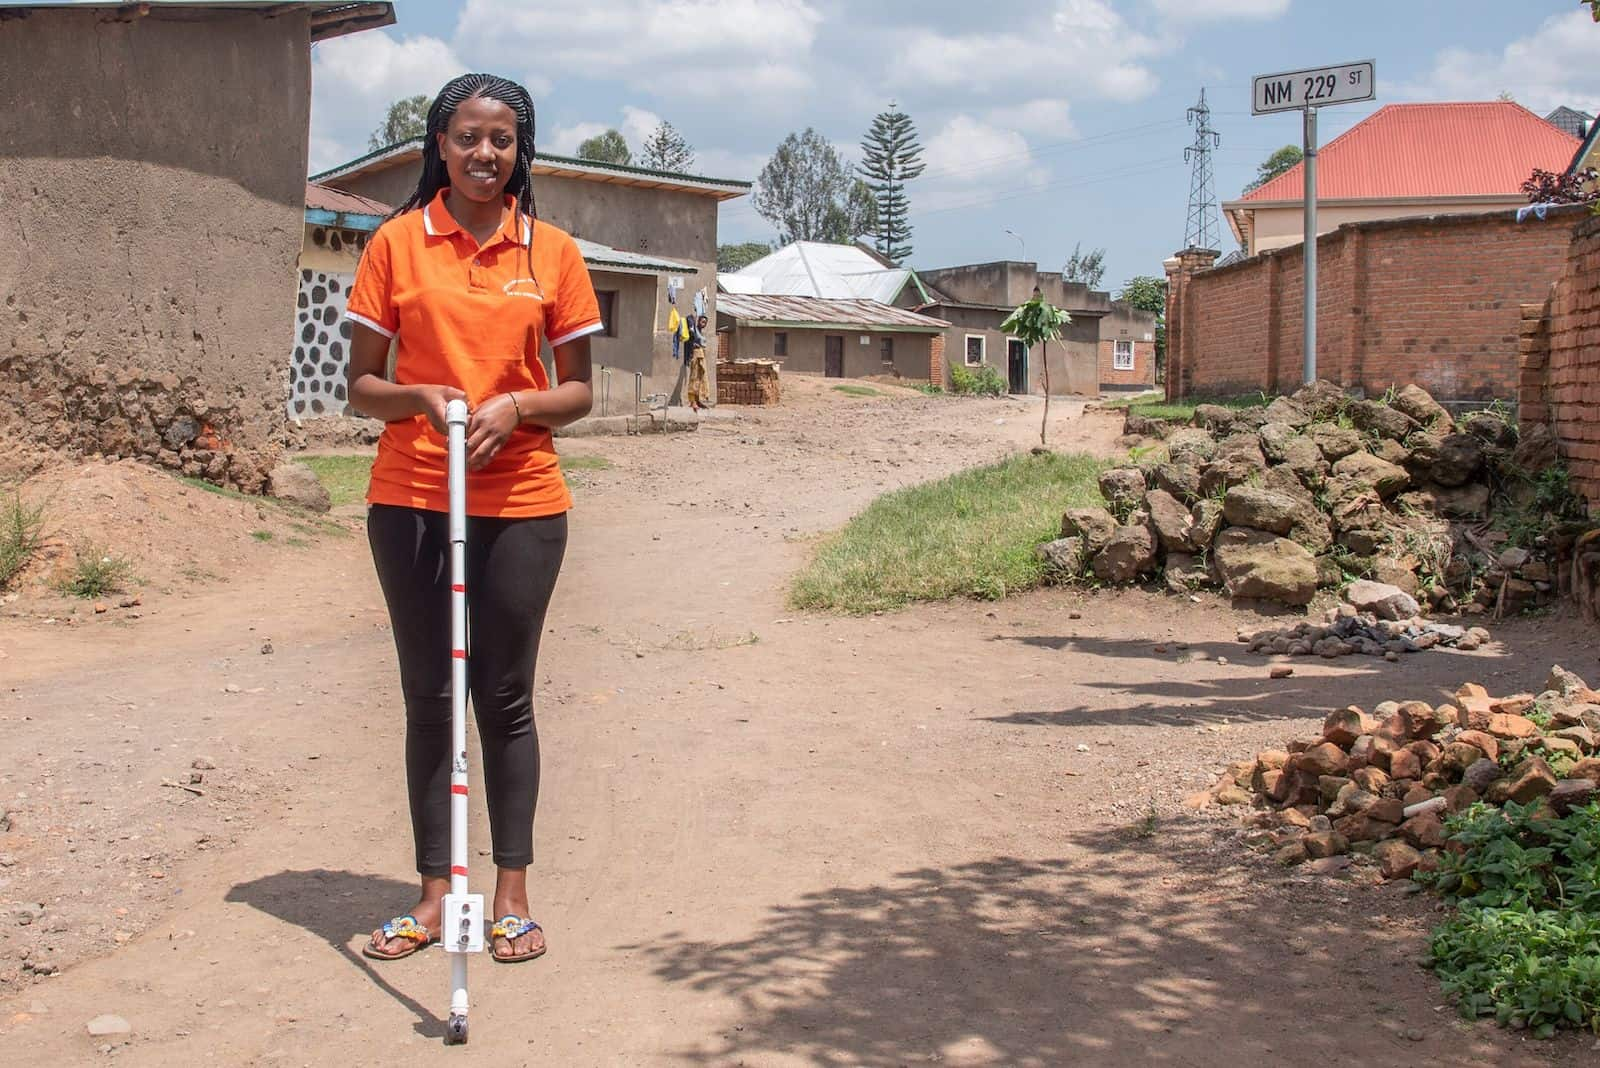 A girl in an orange shirt stands on a dirt road, holding a blind stick.